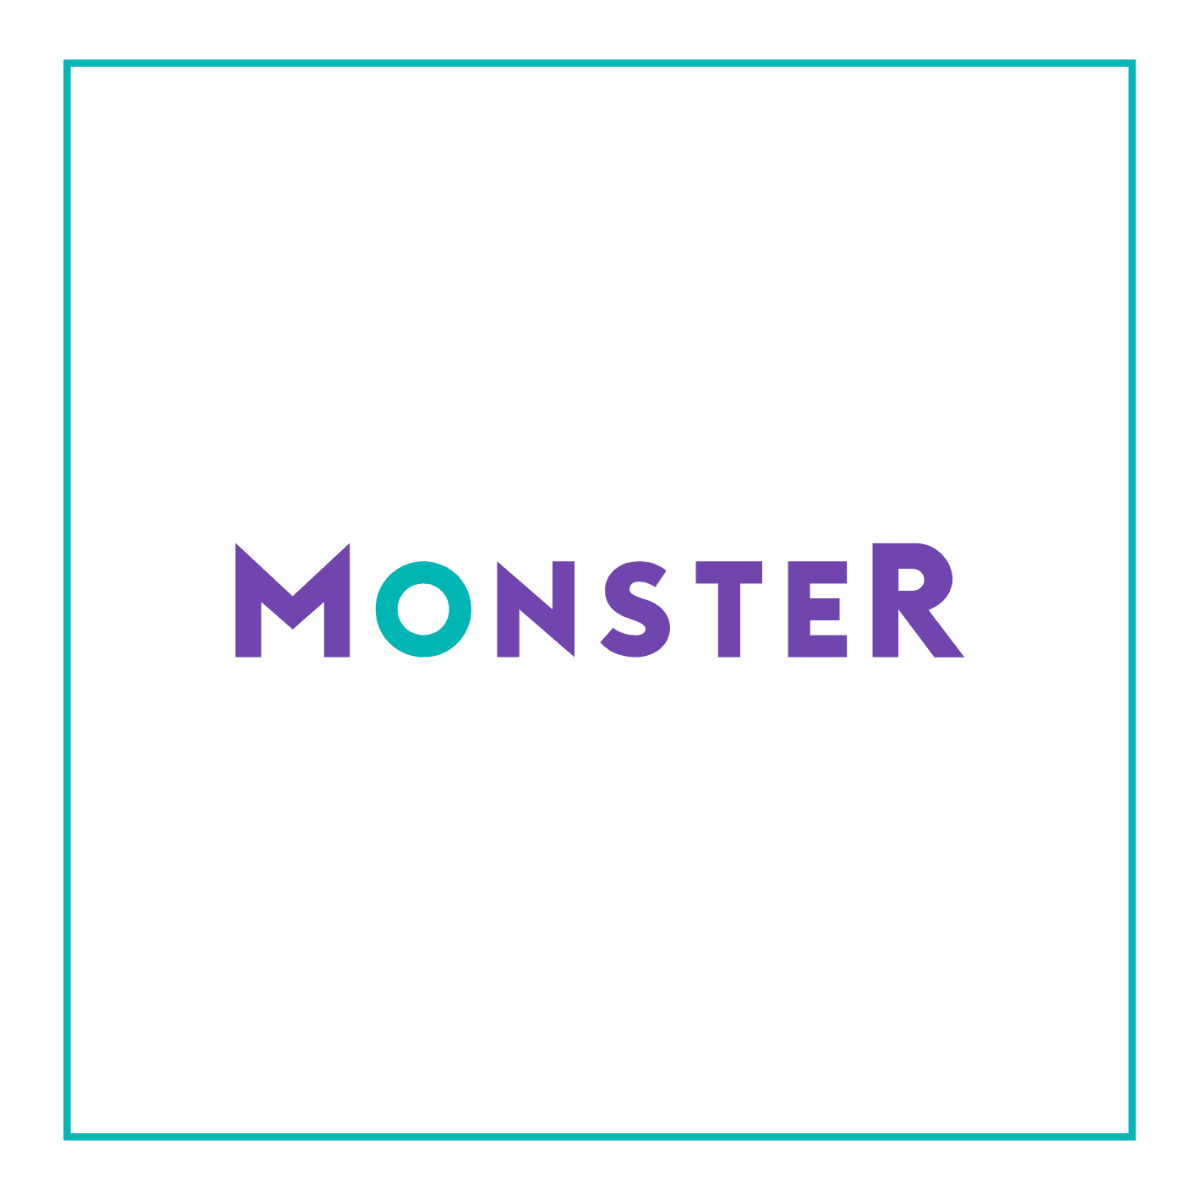 How To Find A Job With Monster | Review